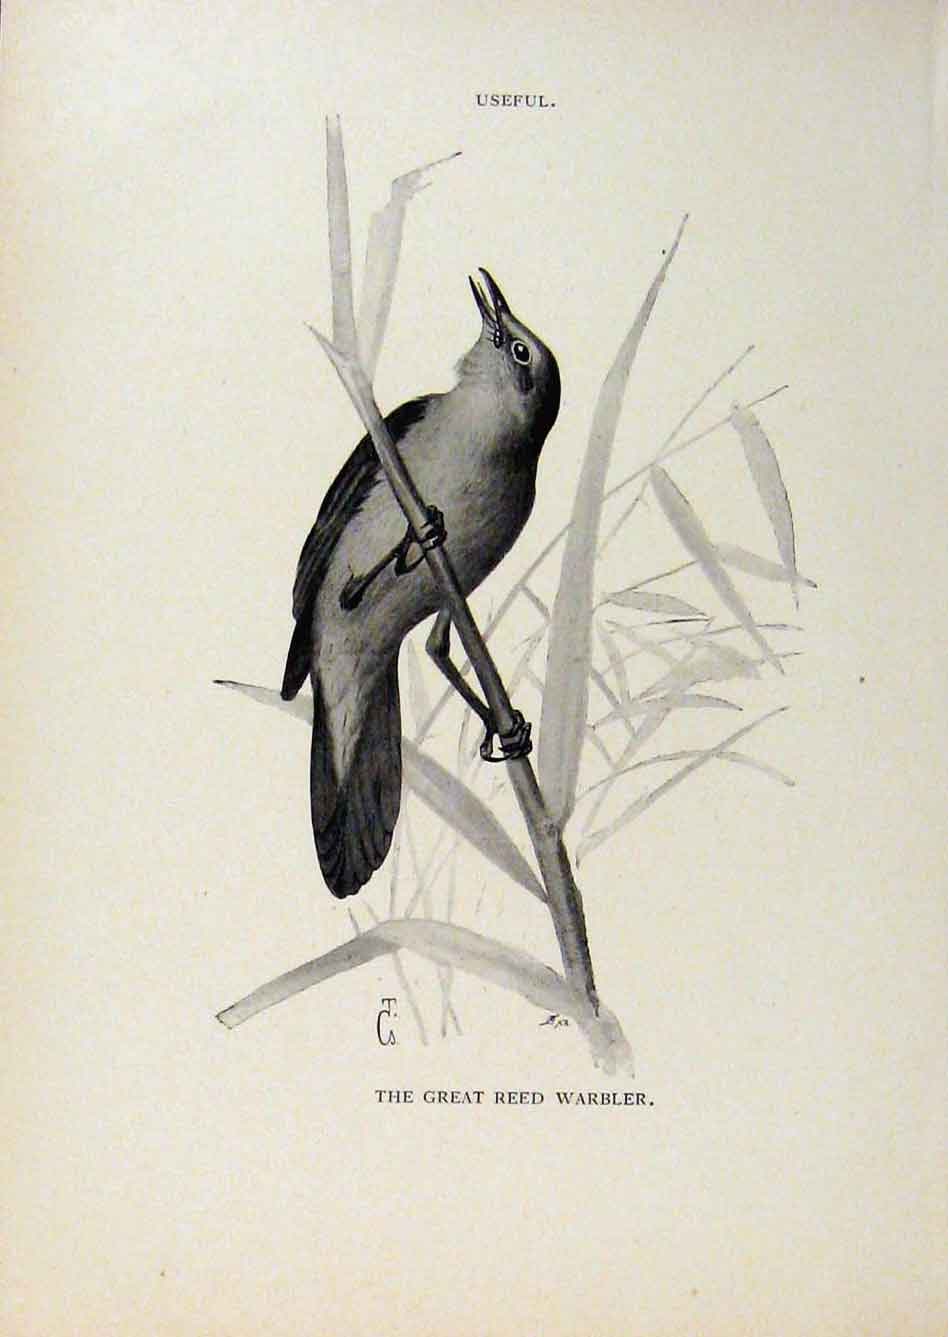 Print Birds Useful And Harmful Great Reed Warbler By Csorgey 488291 Old Original